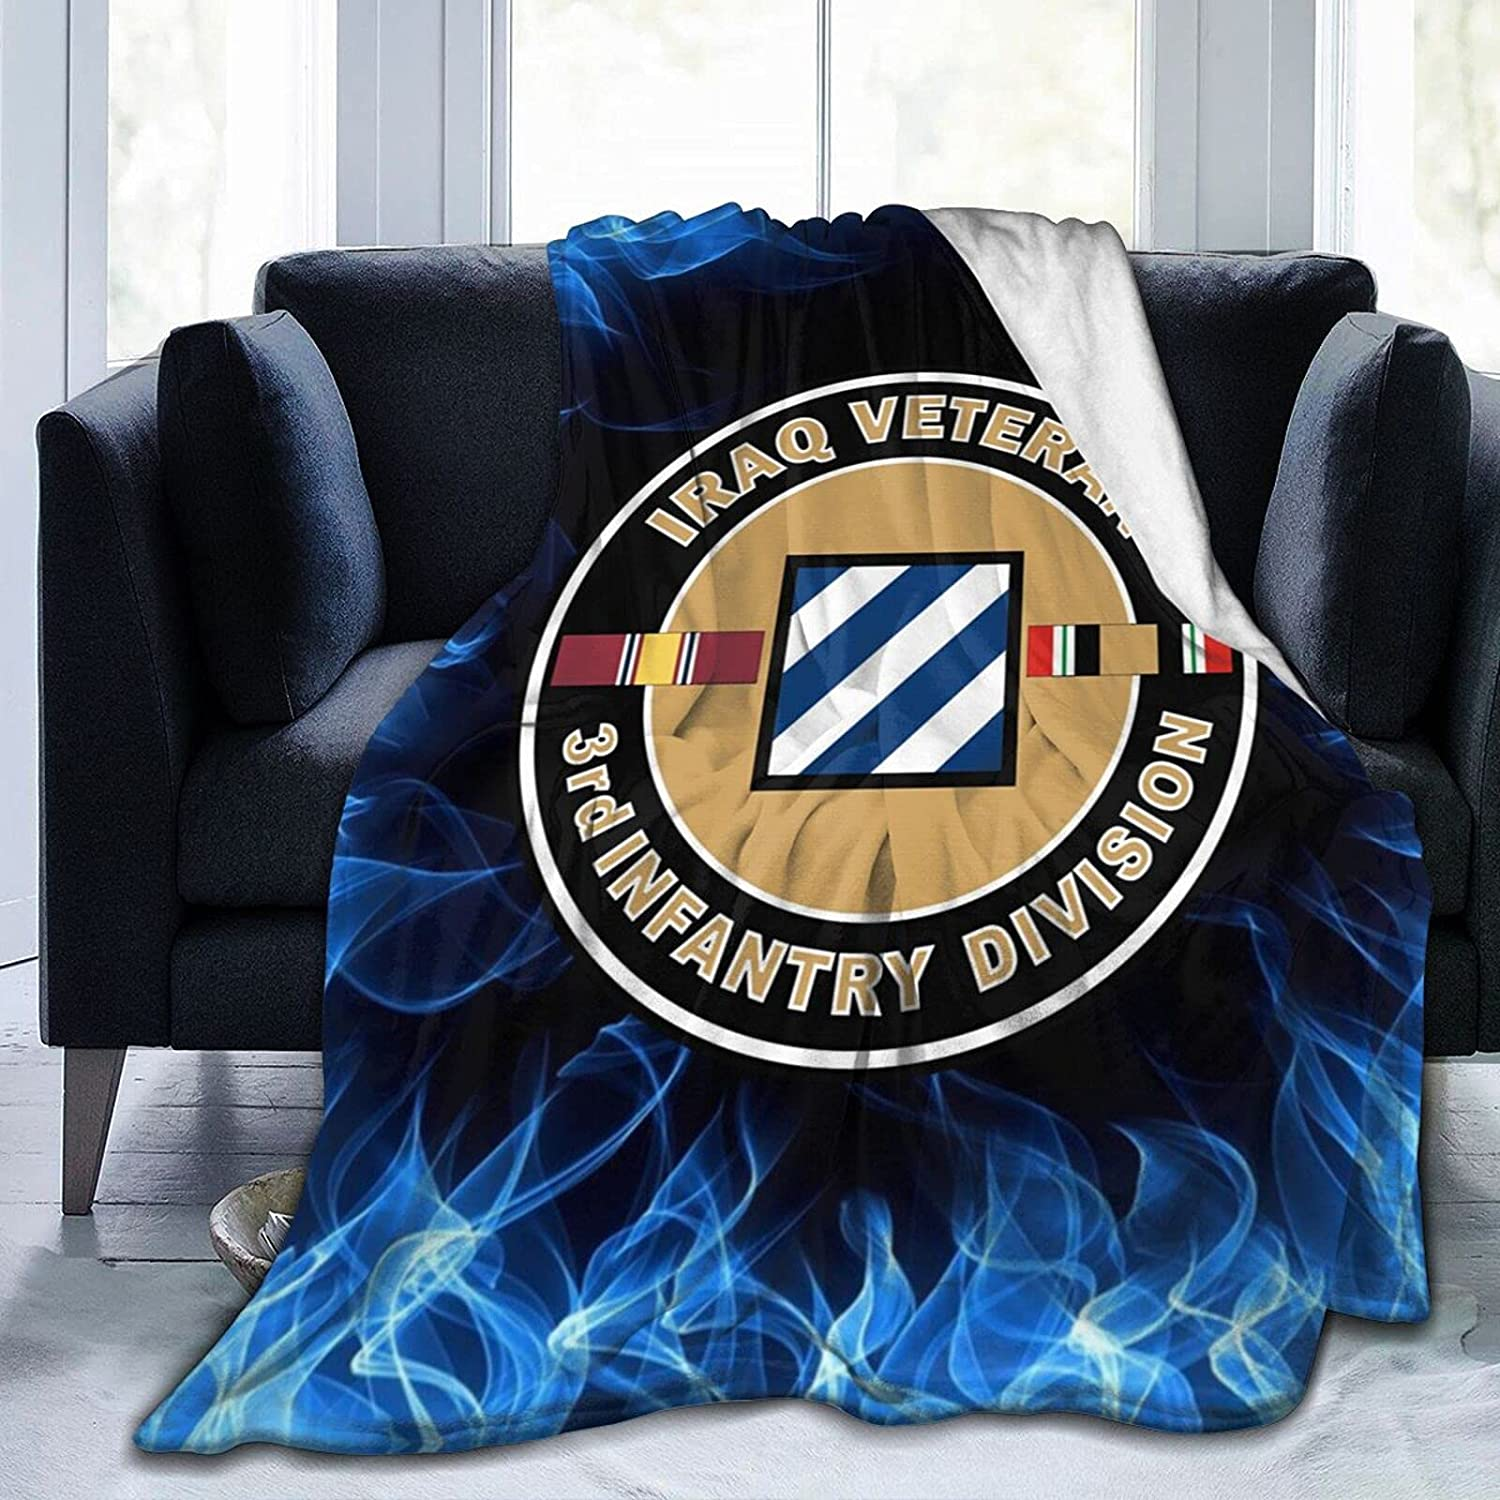 Army Iraq Veteran Colorado Springs Mall 3rd Infantry Blanket Flannel with Mili Daily bargain sale Printed